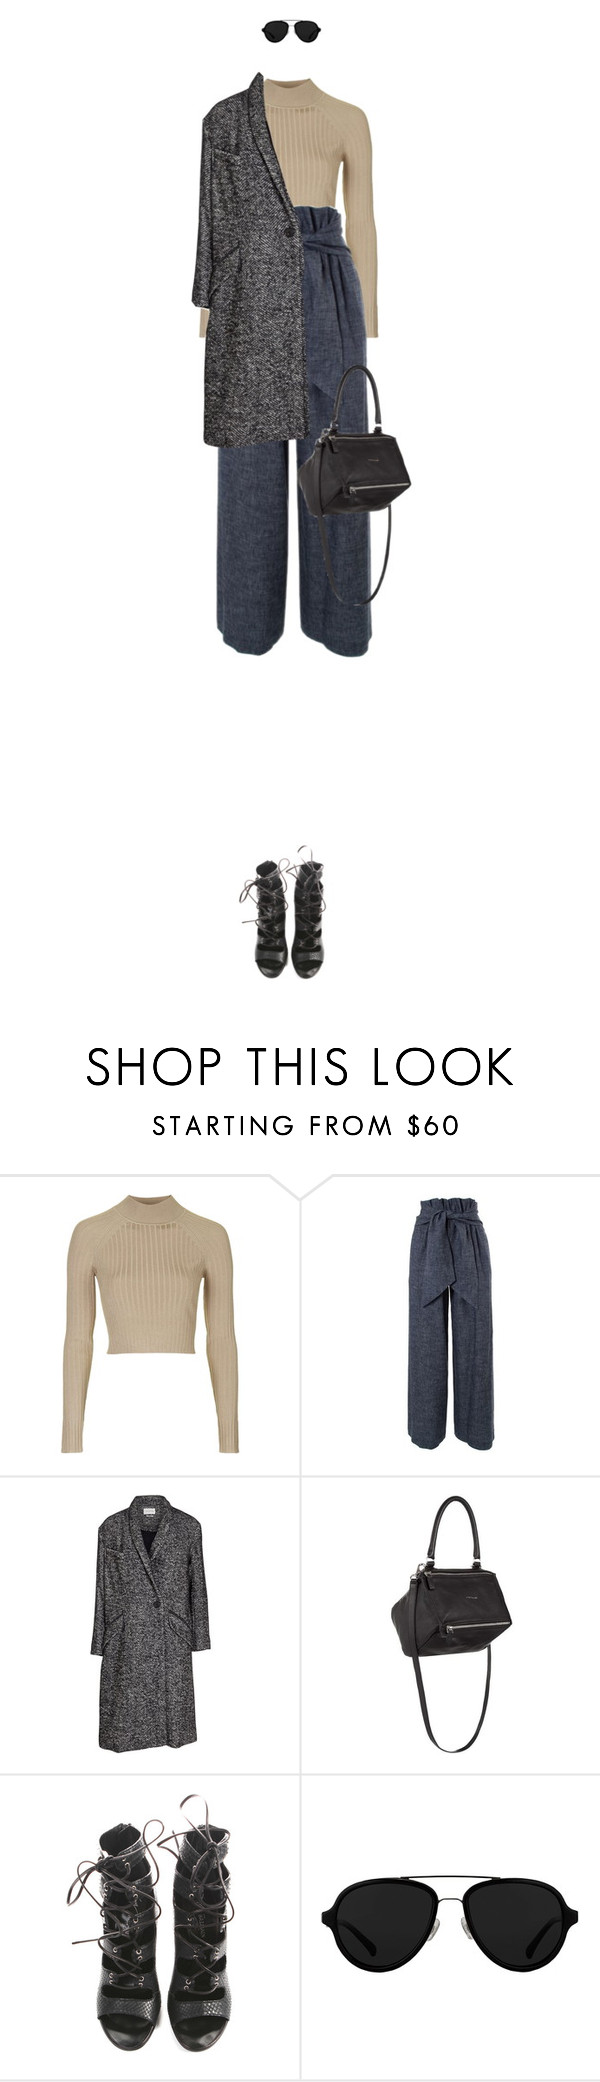 """""""Untitled #2587"""" by mitchelcrandell ❤ liked on Polyvore featuring Topshop, MSGM, Étoile Isabel Marant, Givenchy, Balmain, 3.1 Phillip Lim, women's clothing, women's fashion, women and female"""